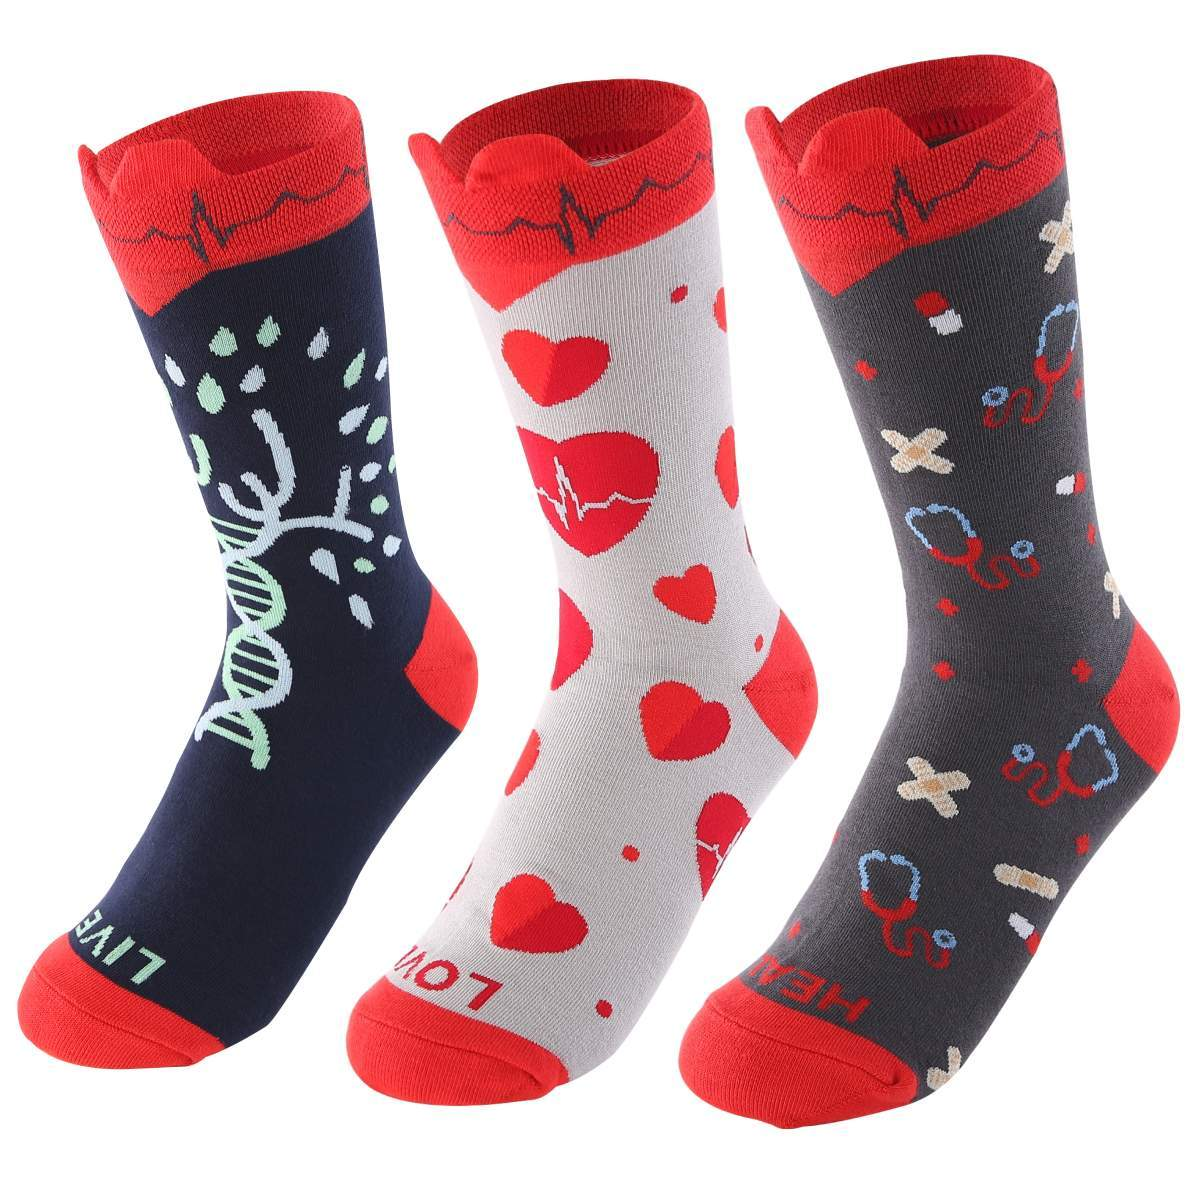 Medical EKG Heart Women's Crew Socks-UPKIWI